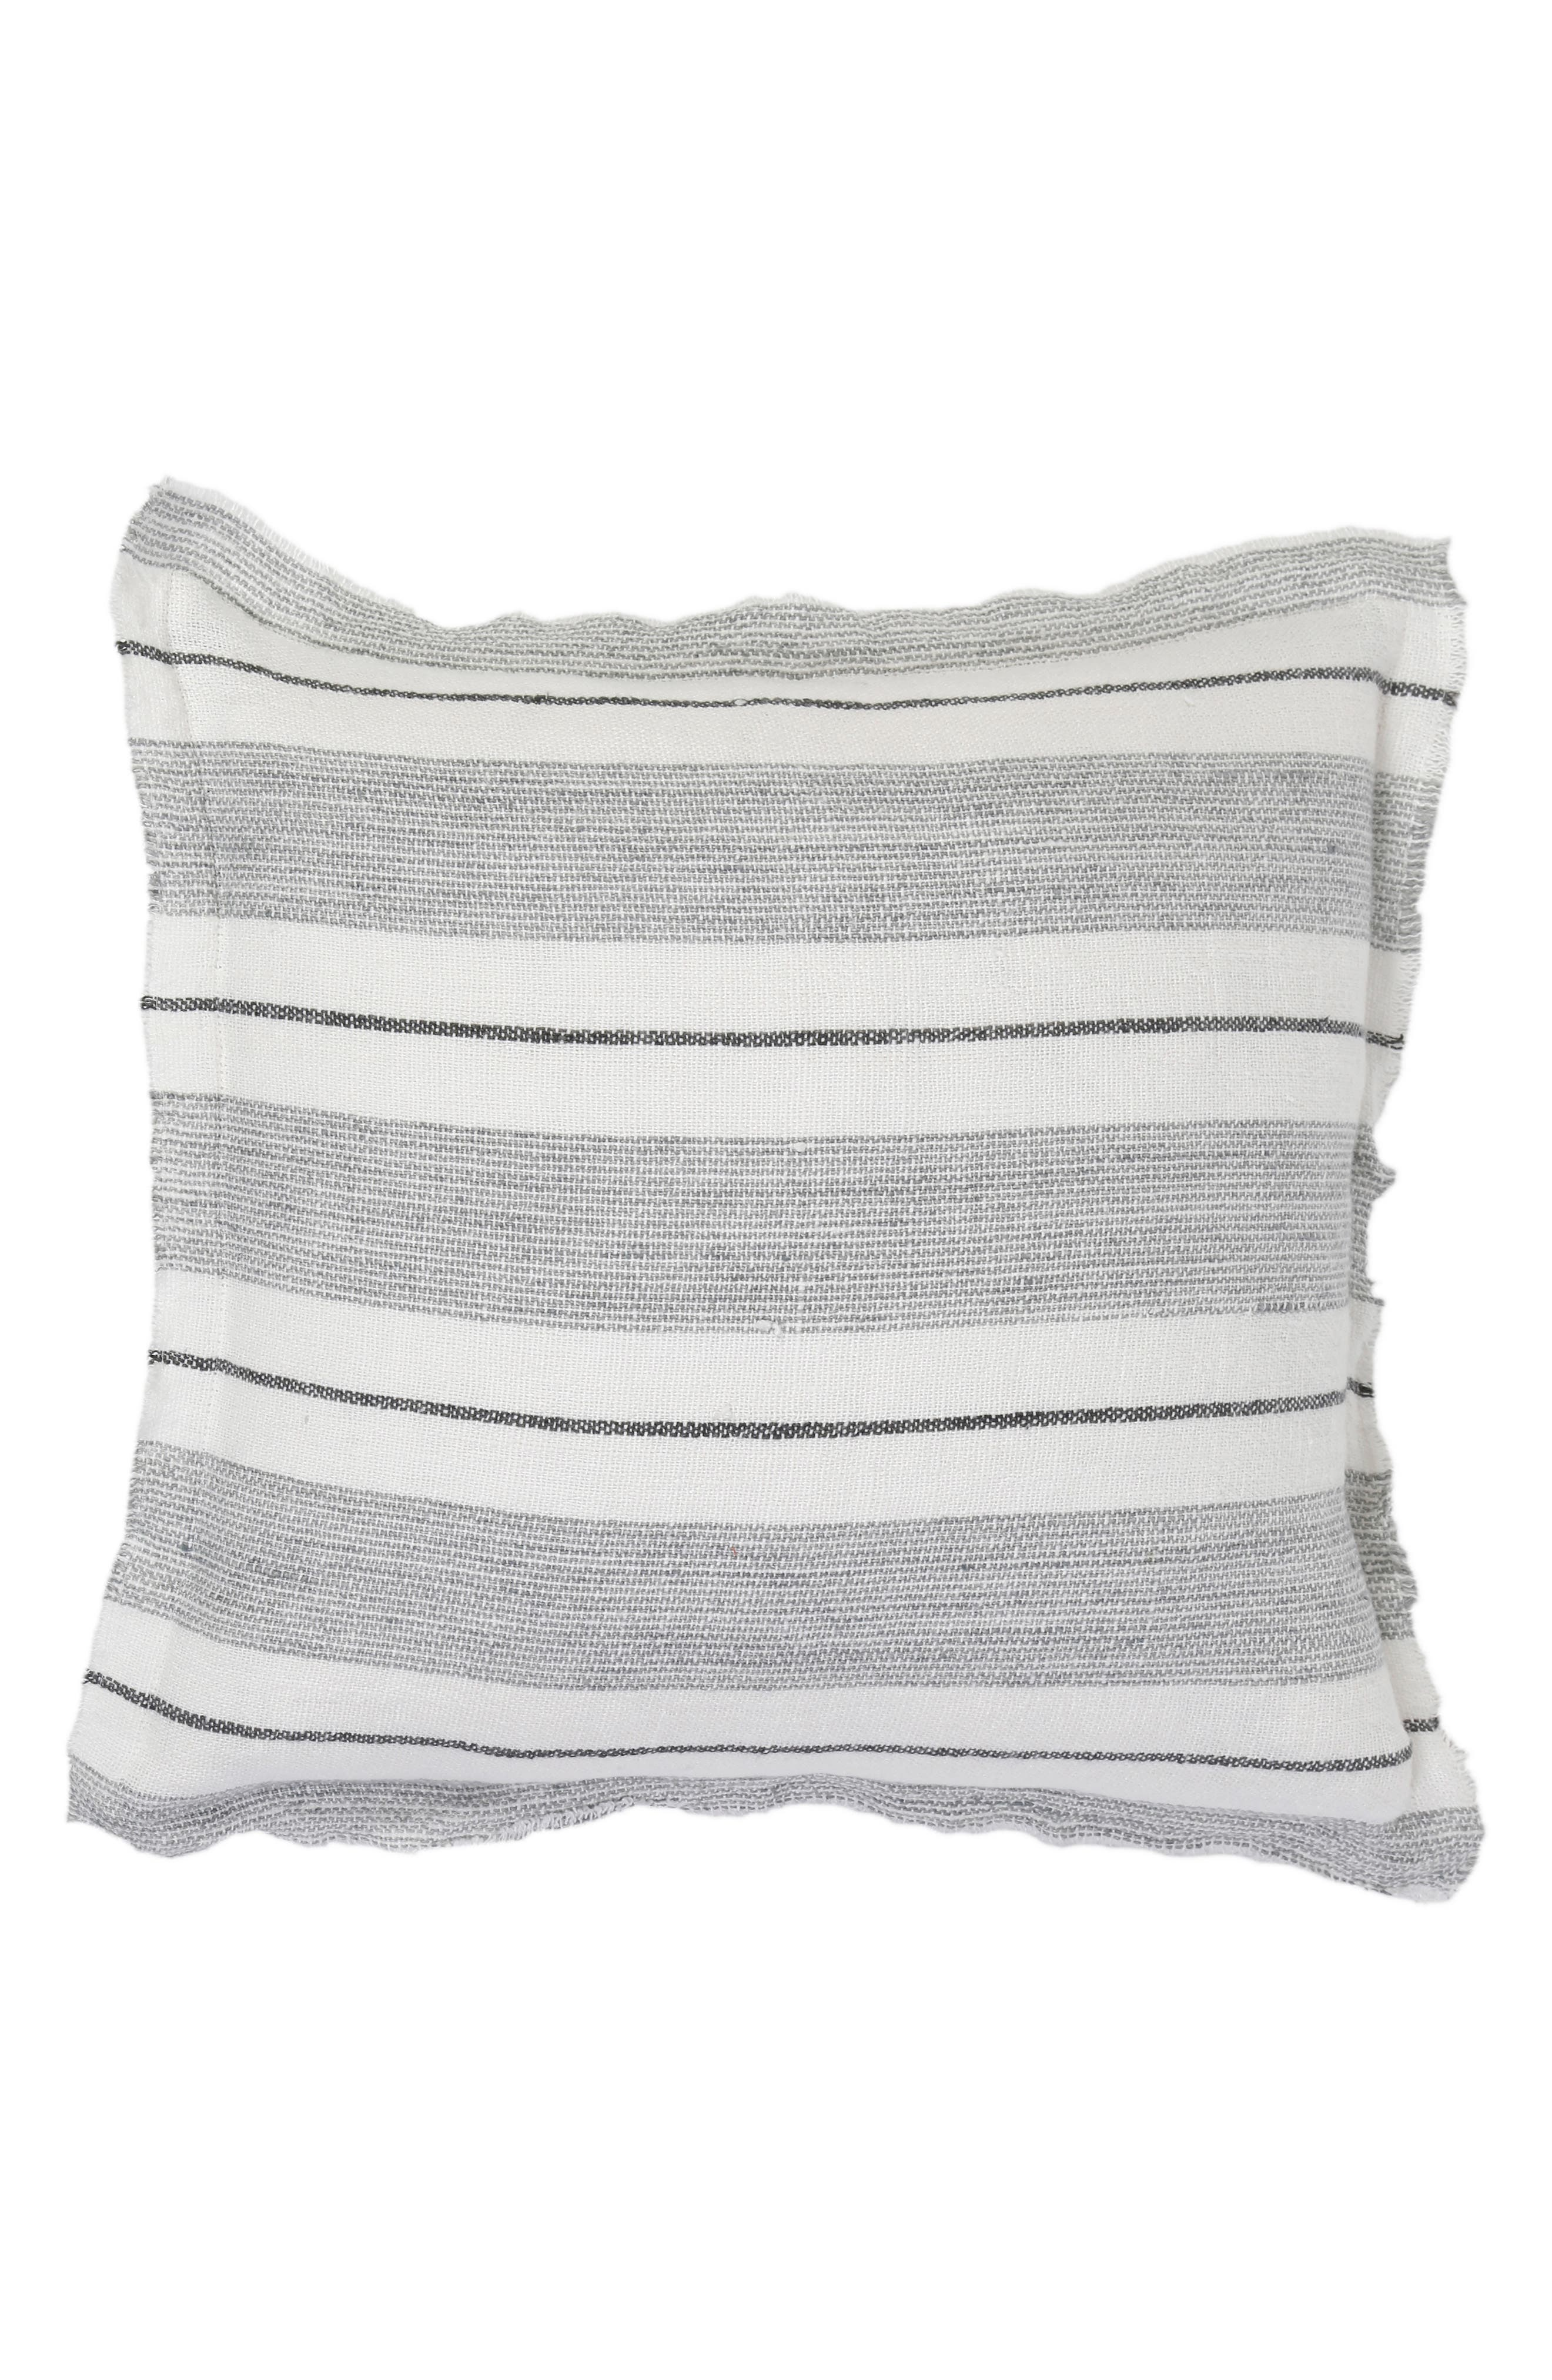 POM POM AT HOME,                             Laguna Accent Pillow,                             Main thumbnail 1, color,                             GREY/ CHARCOAL